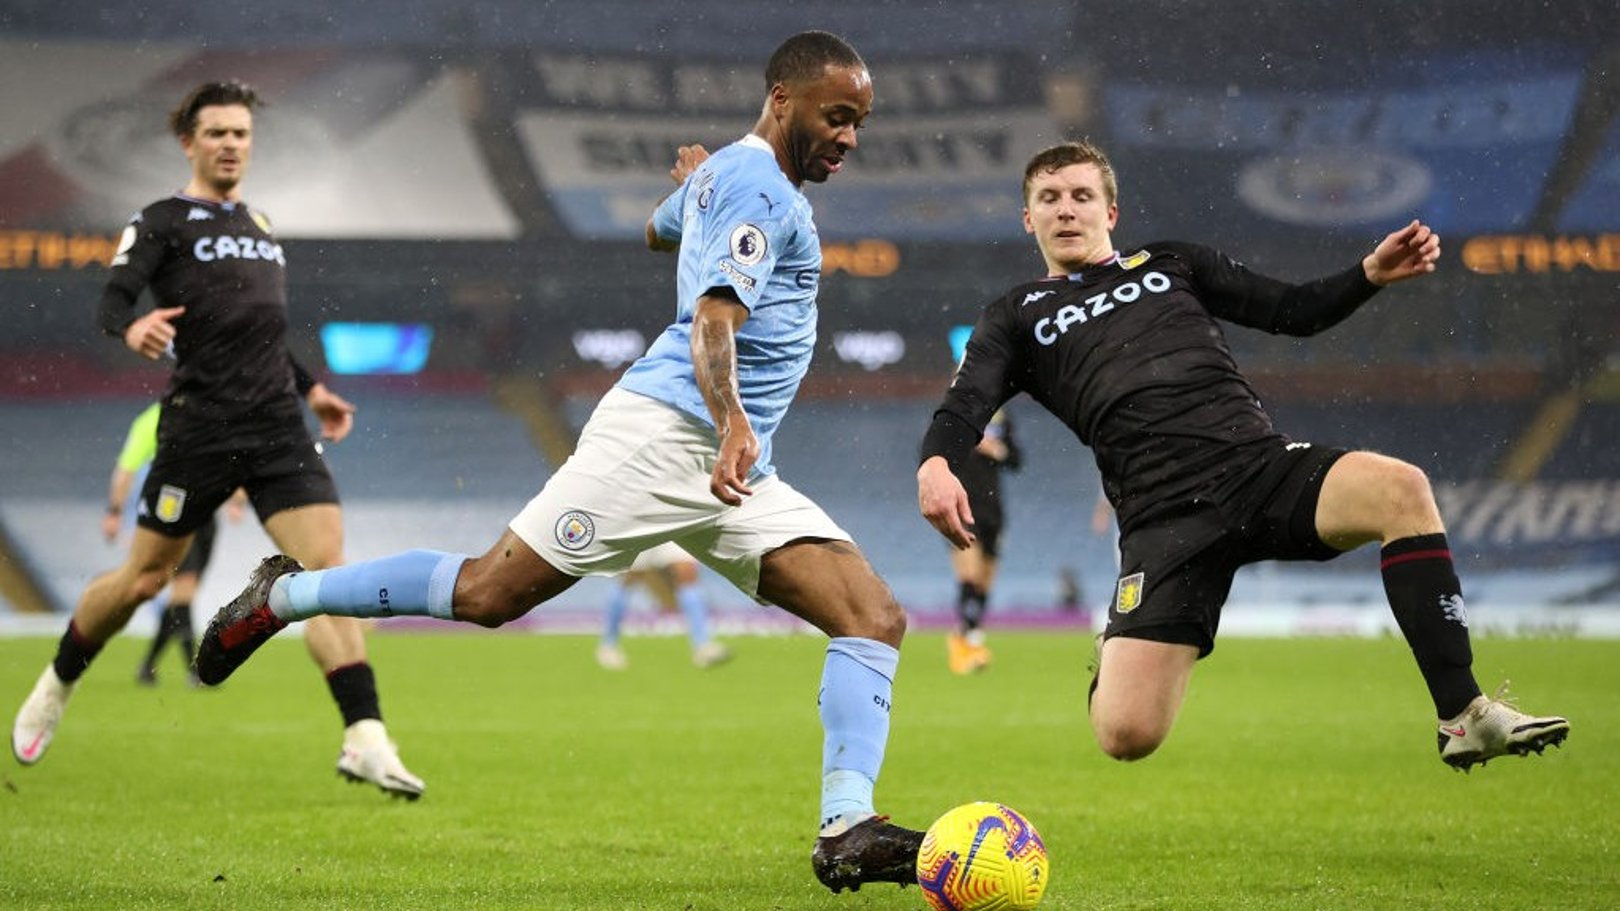 WING PLAY: Raheem Sterling whips in a cross from the right